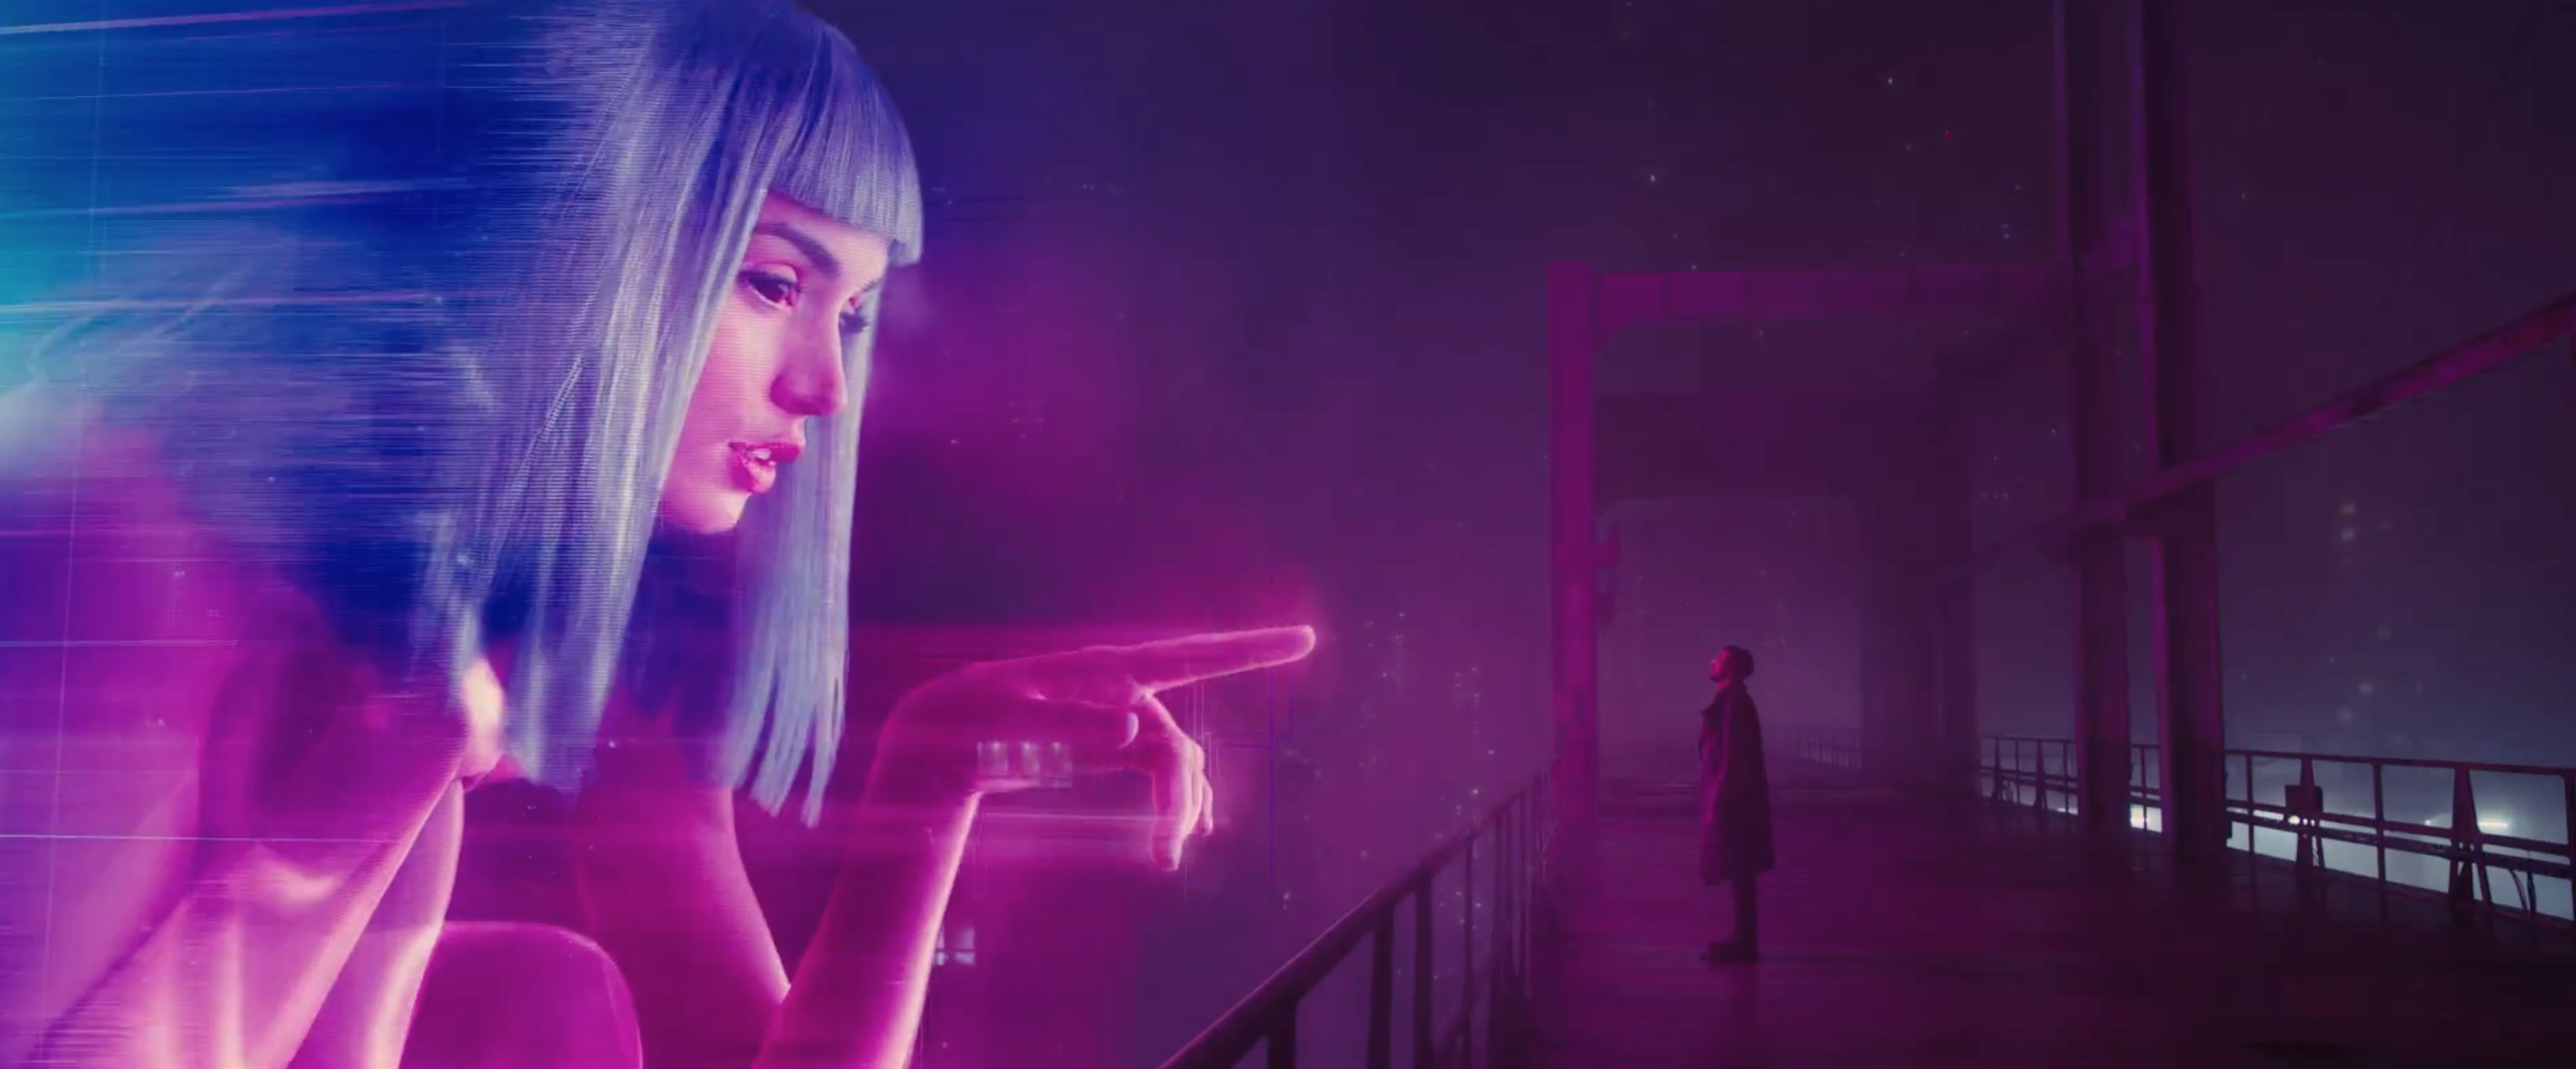 Cars Logo And Name >> Blade Runner 2049 trailer and a first look at Roger Deakins' cinematography - EOSHD